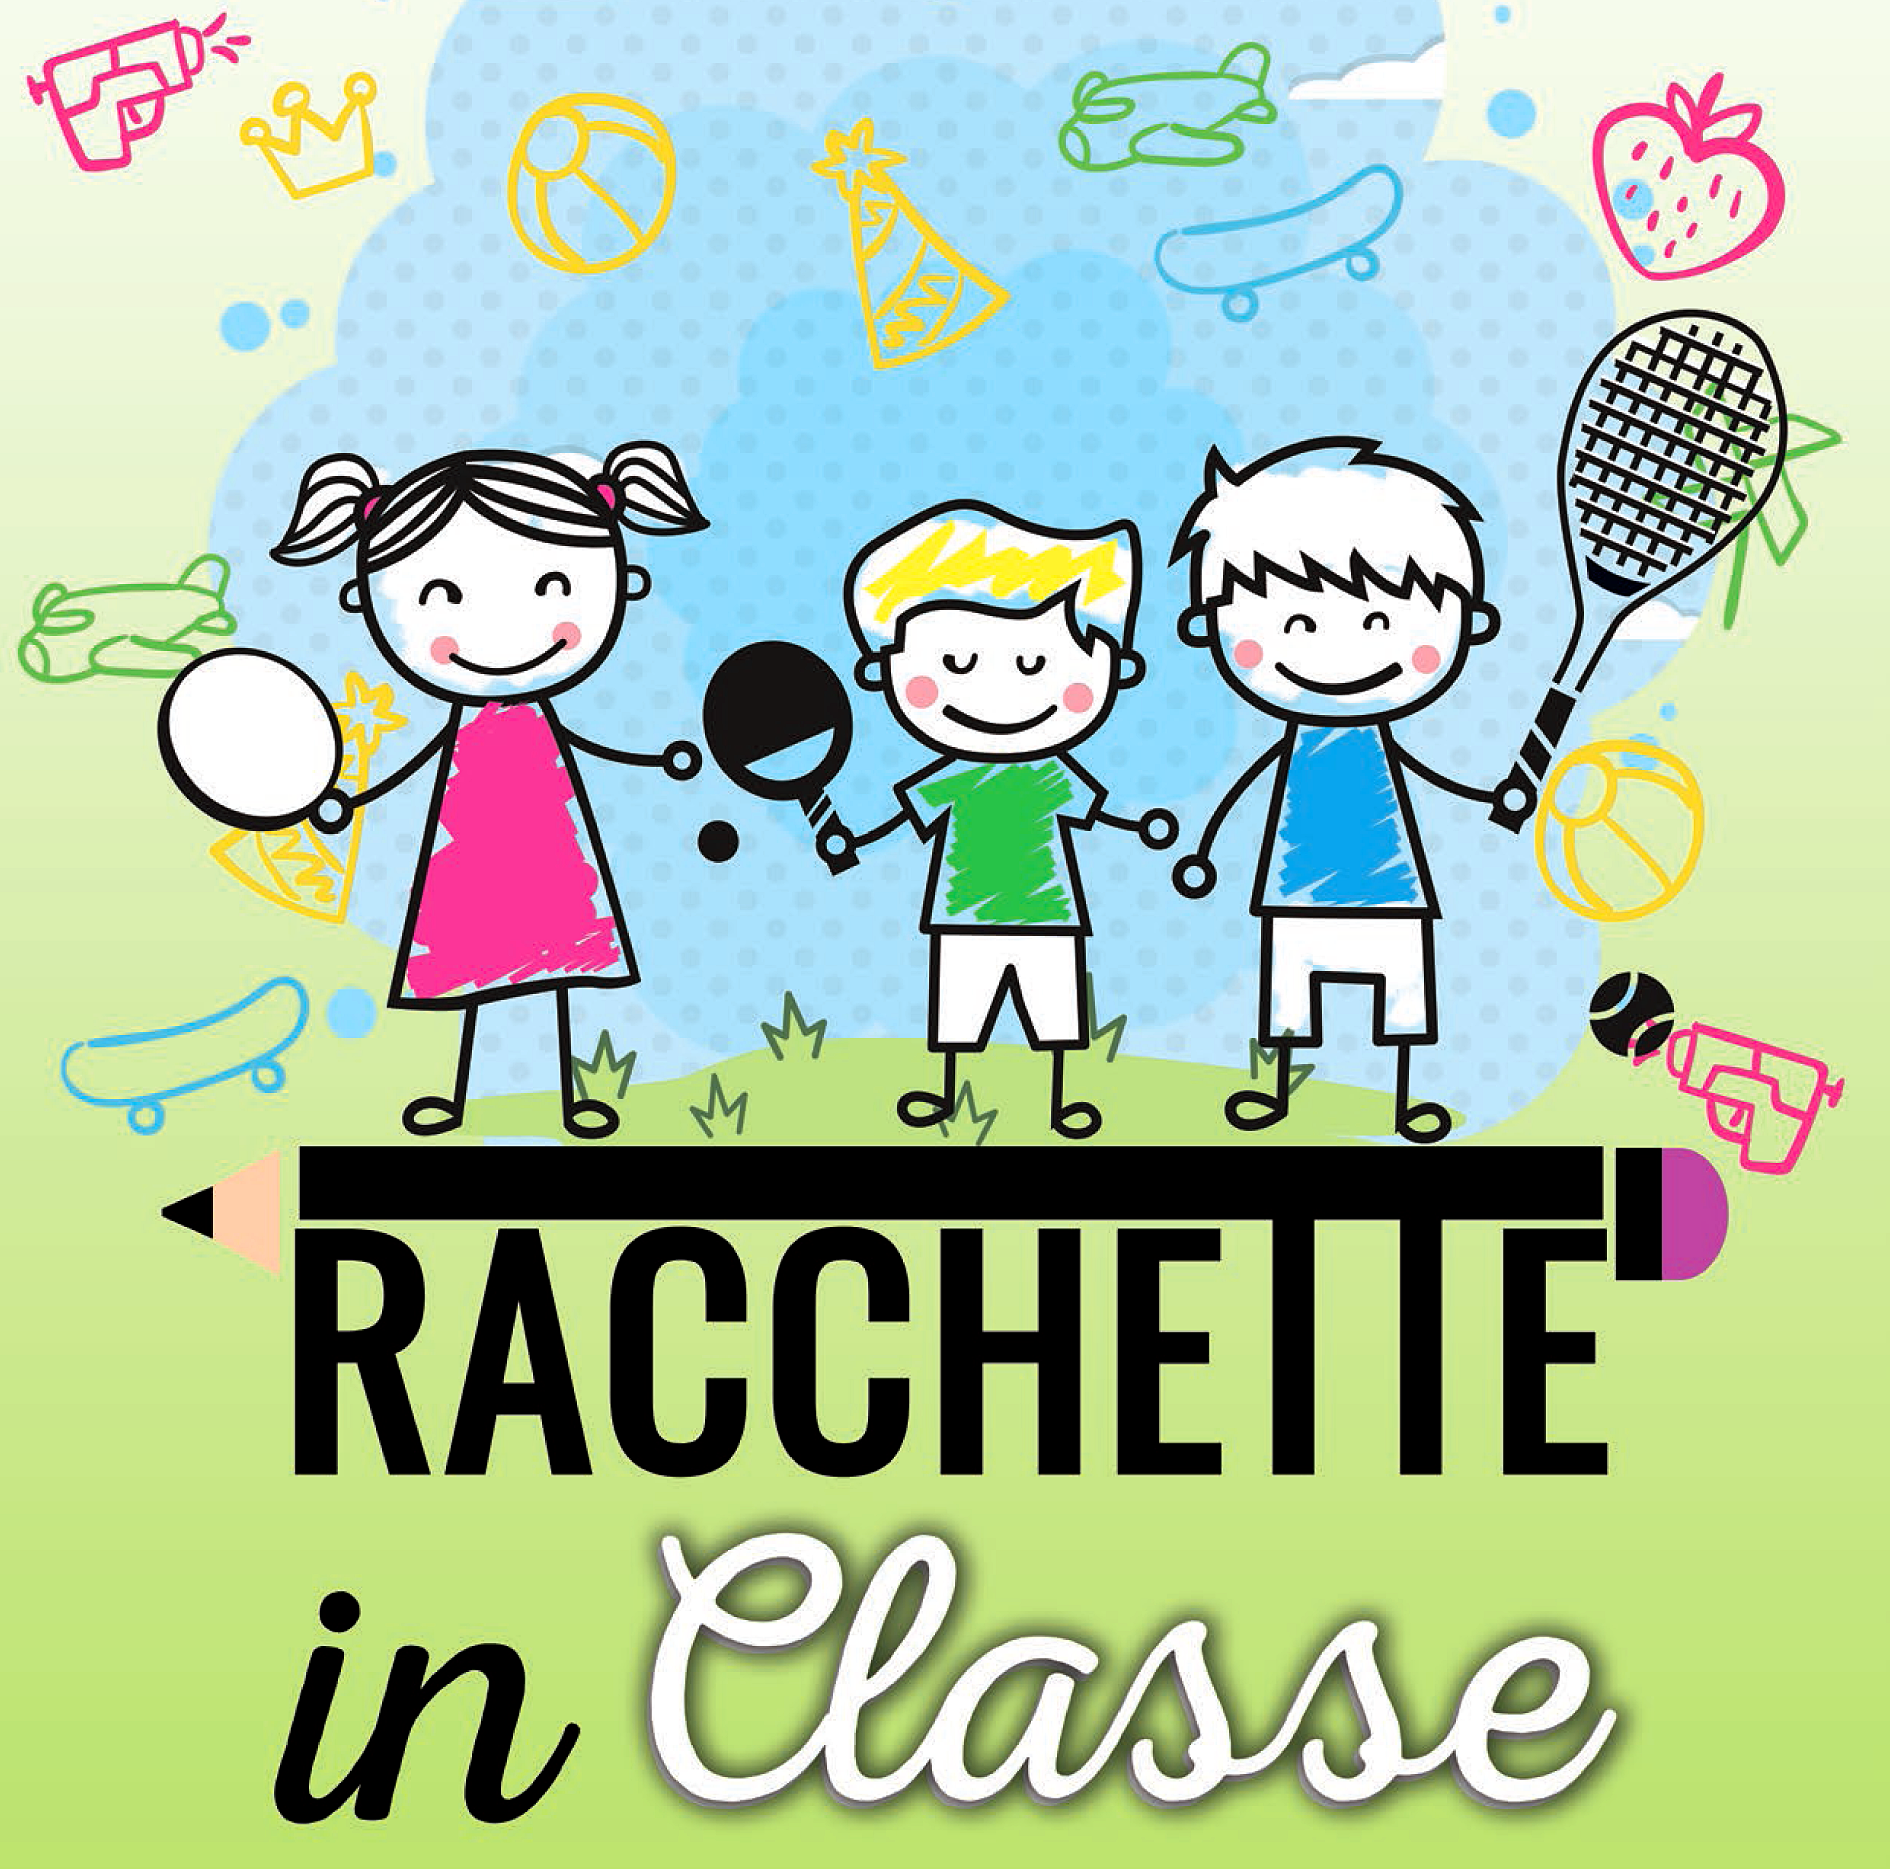 images/News_2020/racchette_in_classe/Logo-Racchette_in_Classe_MIX2019.png